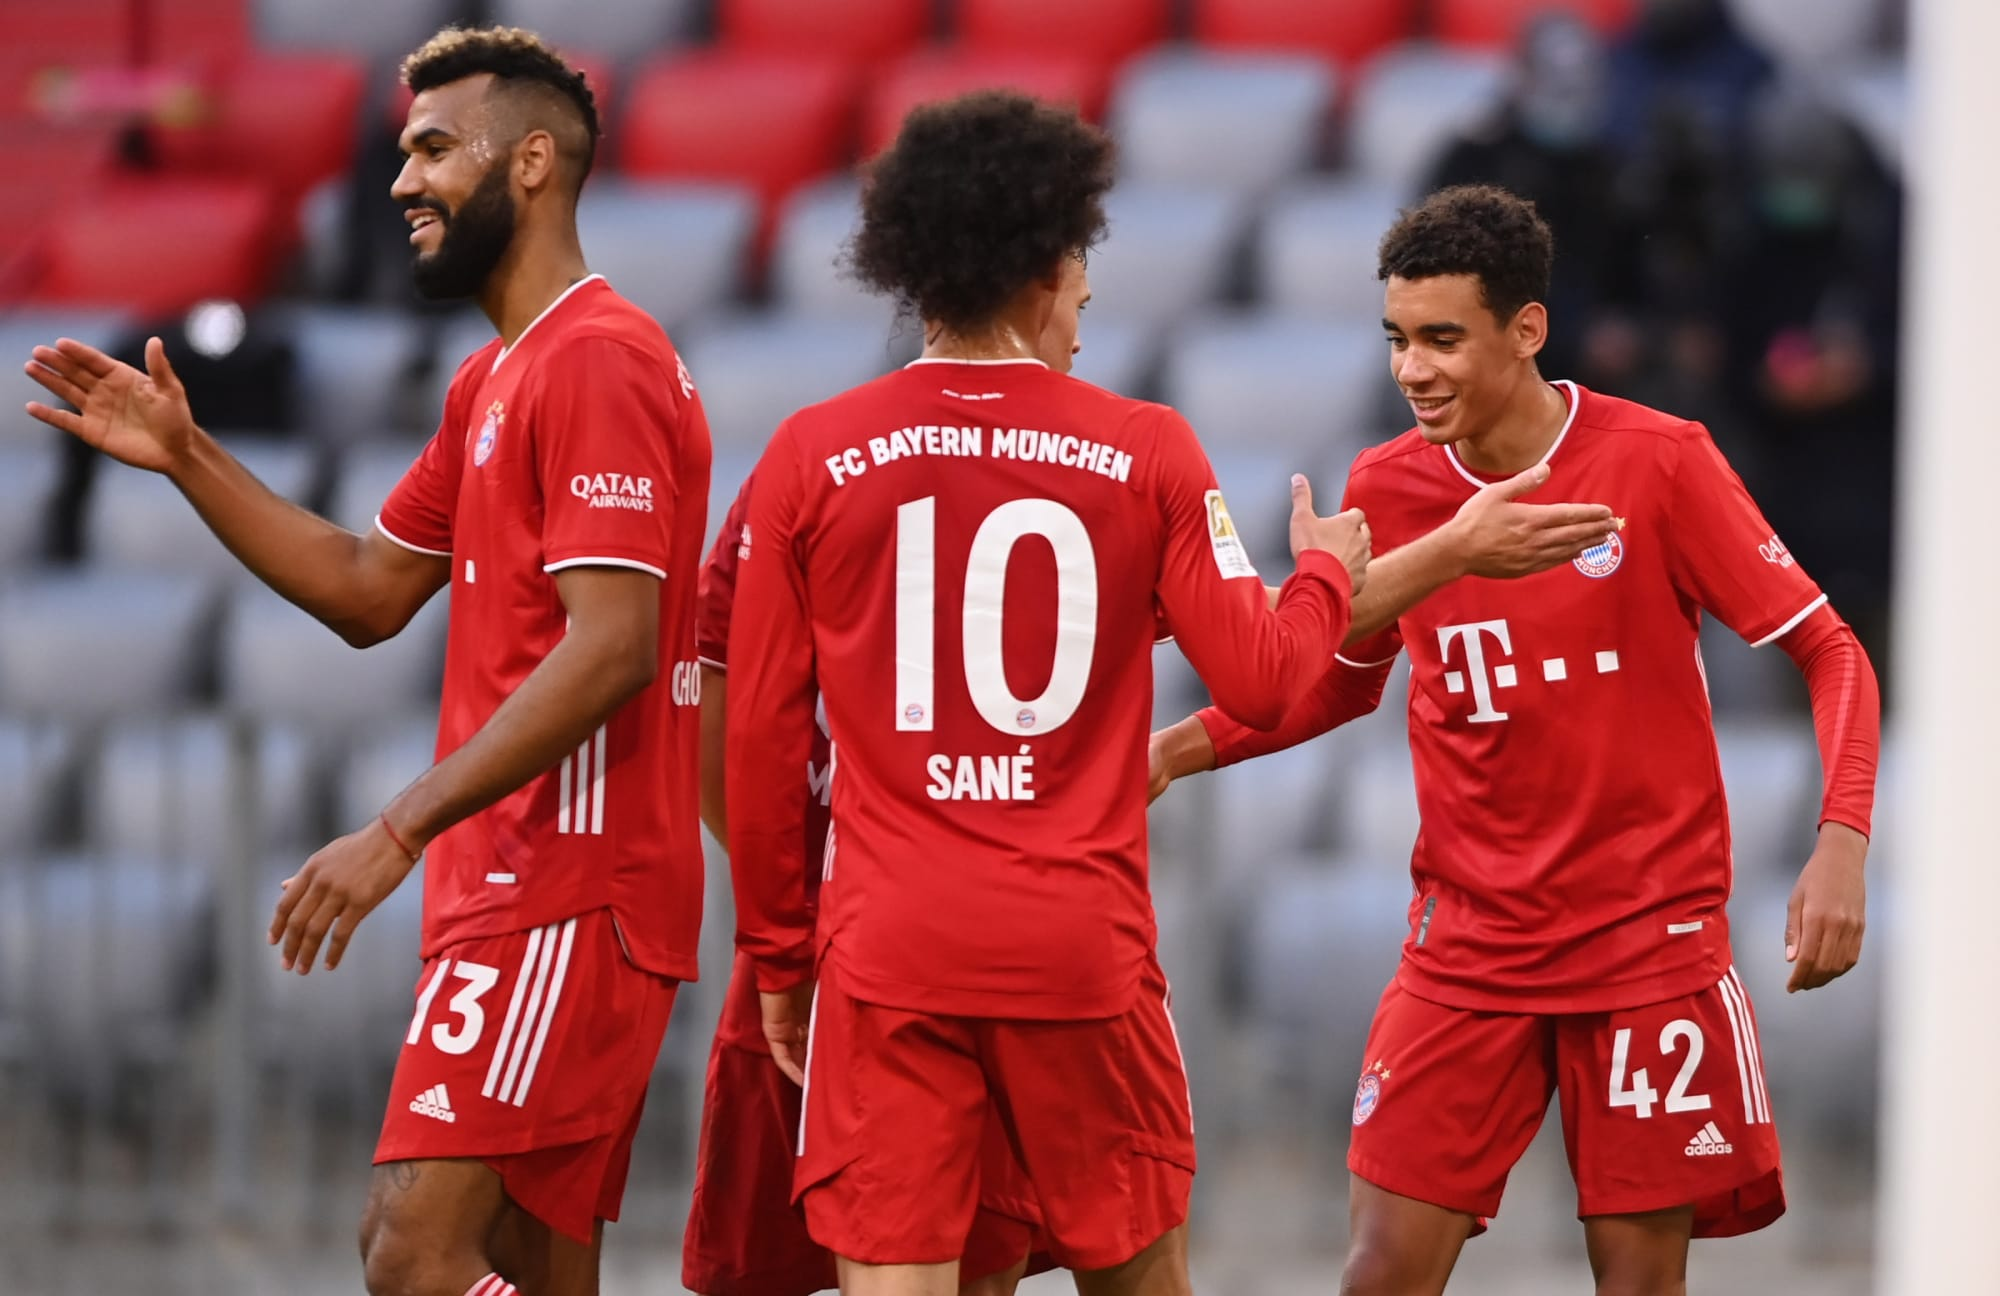 Bayern Munich Three Things To Watch Against Werder Bremen